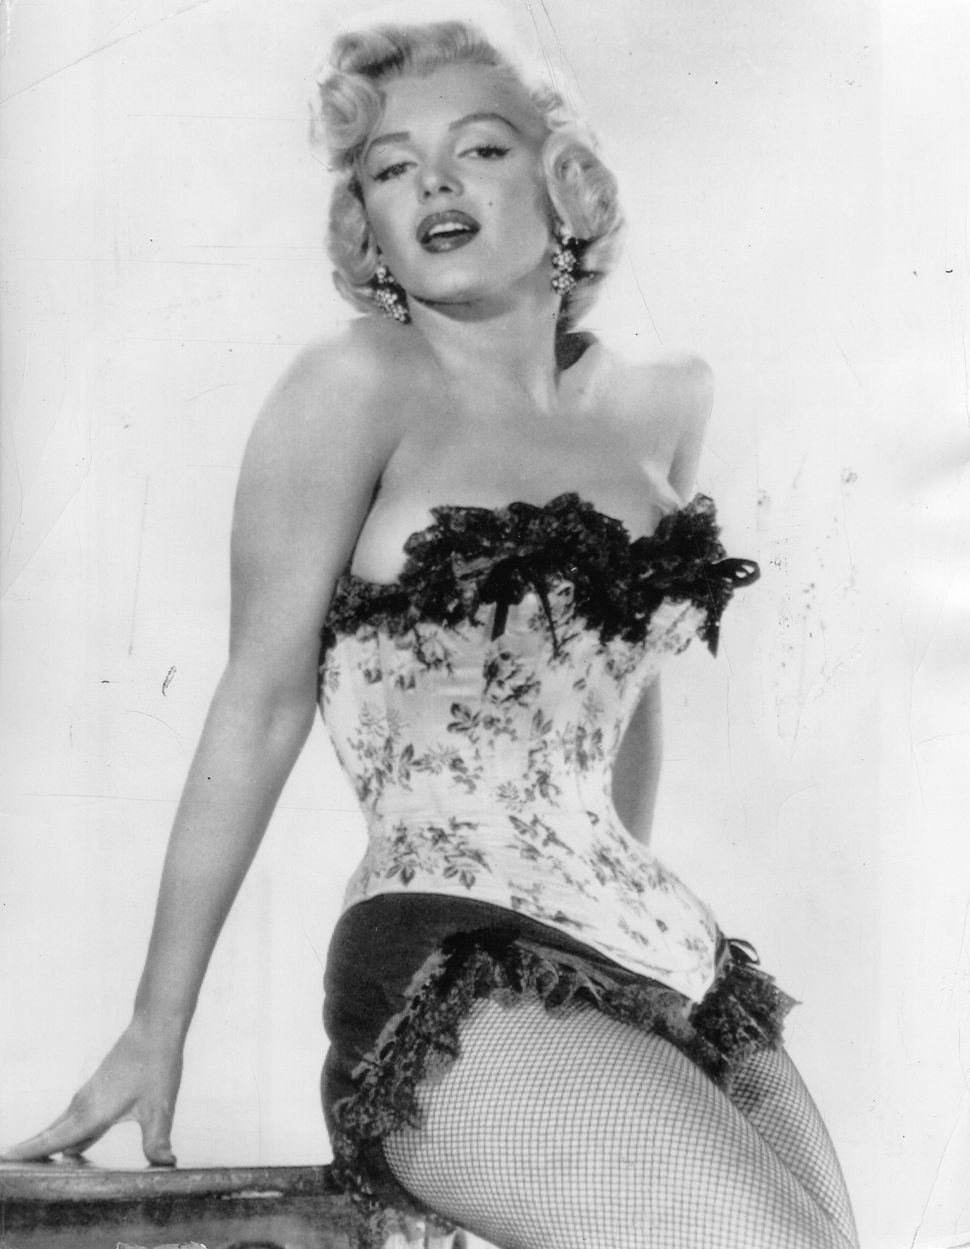 A Visual History Of Marilyn Monroe As A Pin-Up Icon | HuffPost